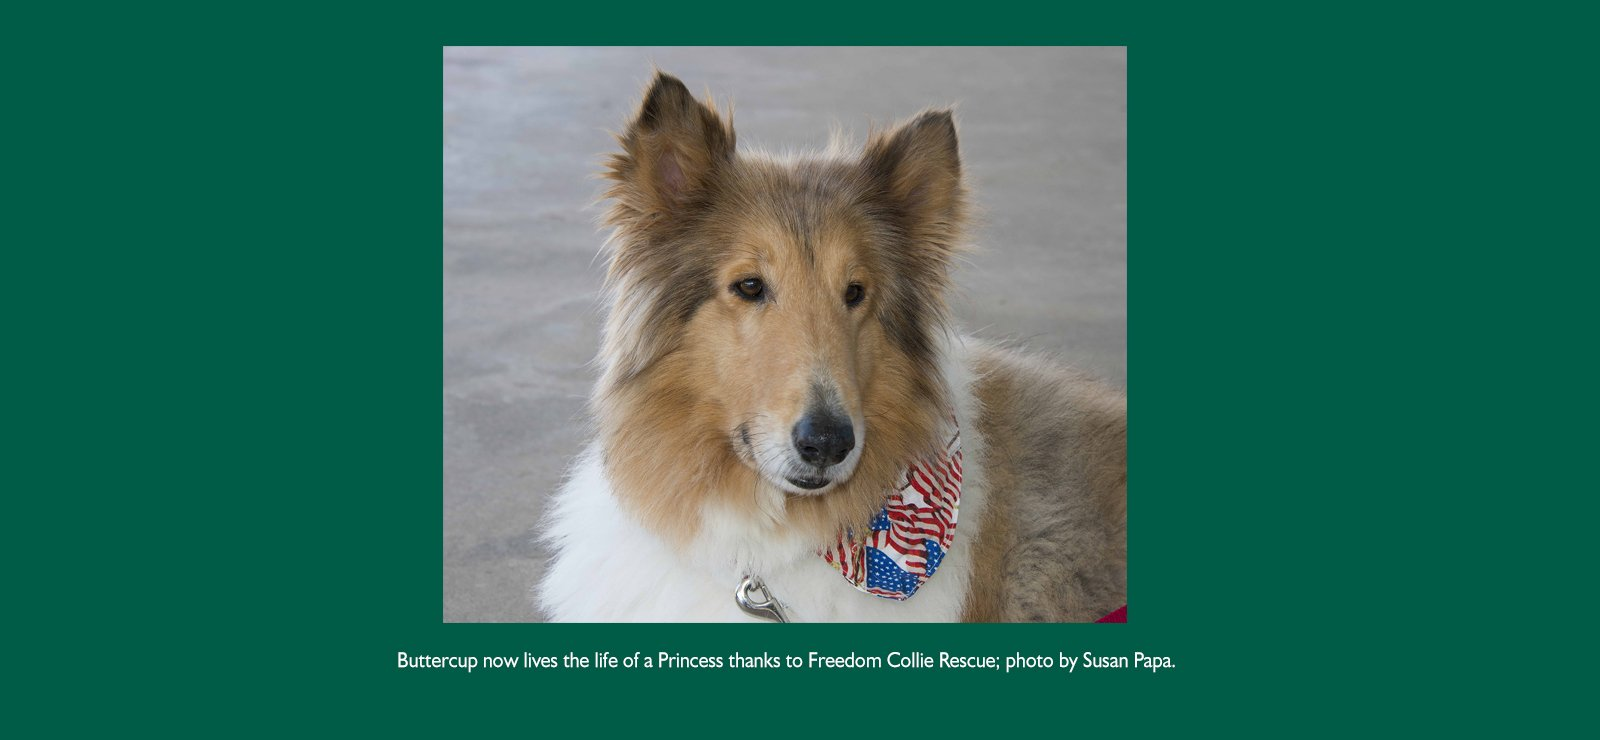 Buttercup now lives the life of a Princess thanks to Freedom Collie Rescue; photo by Susan Papa.